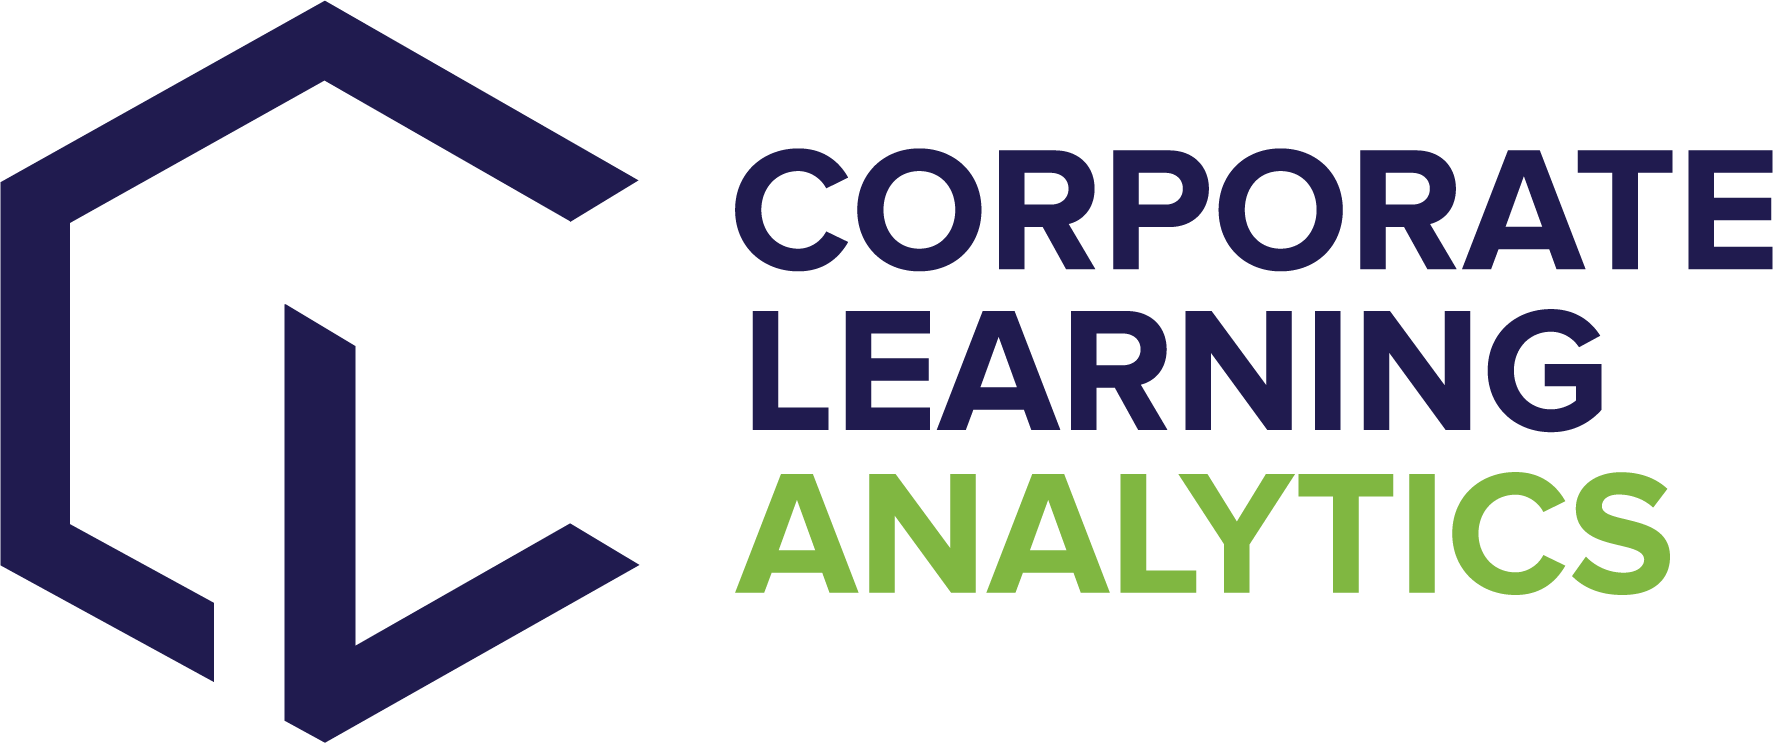 Corporate Learning Analytics